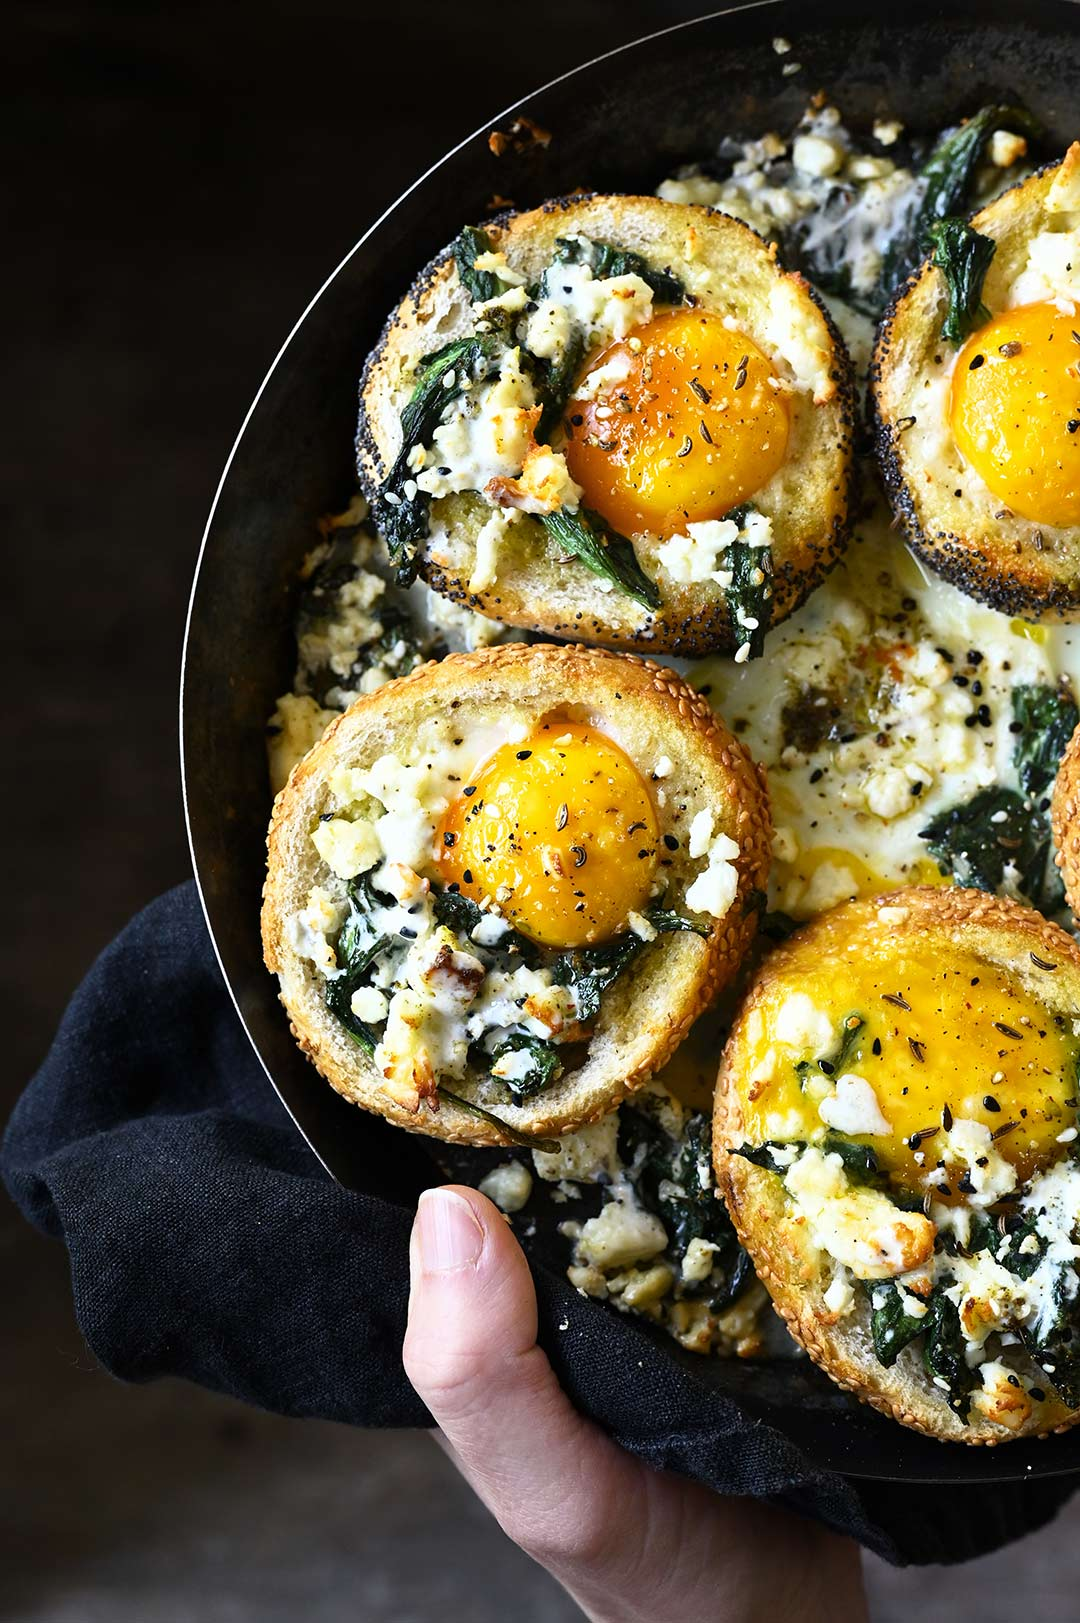 serving dumplings |Baked za'atar egg buns with spinach and feta